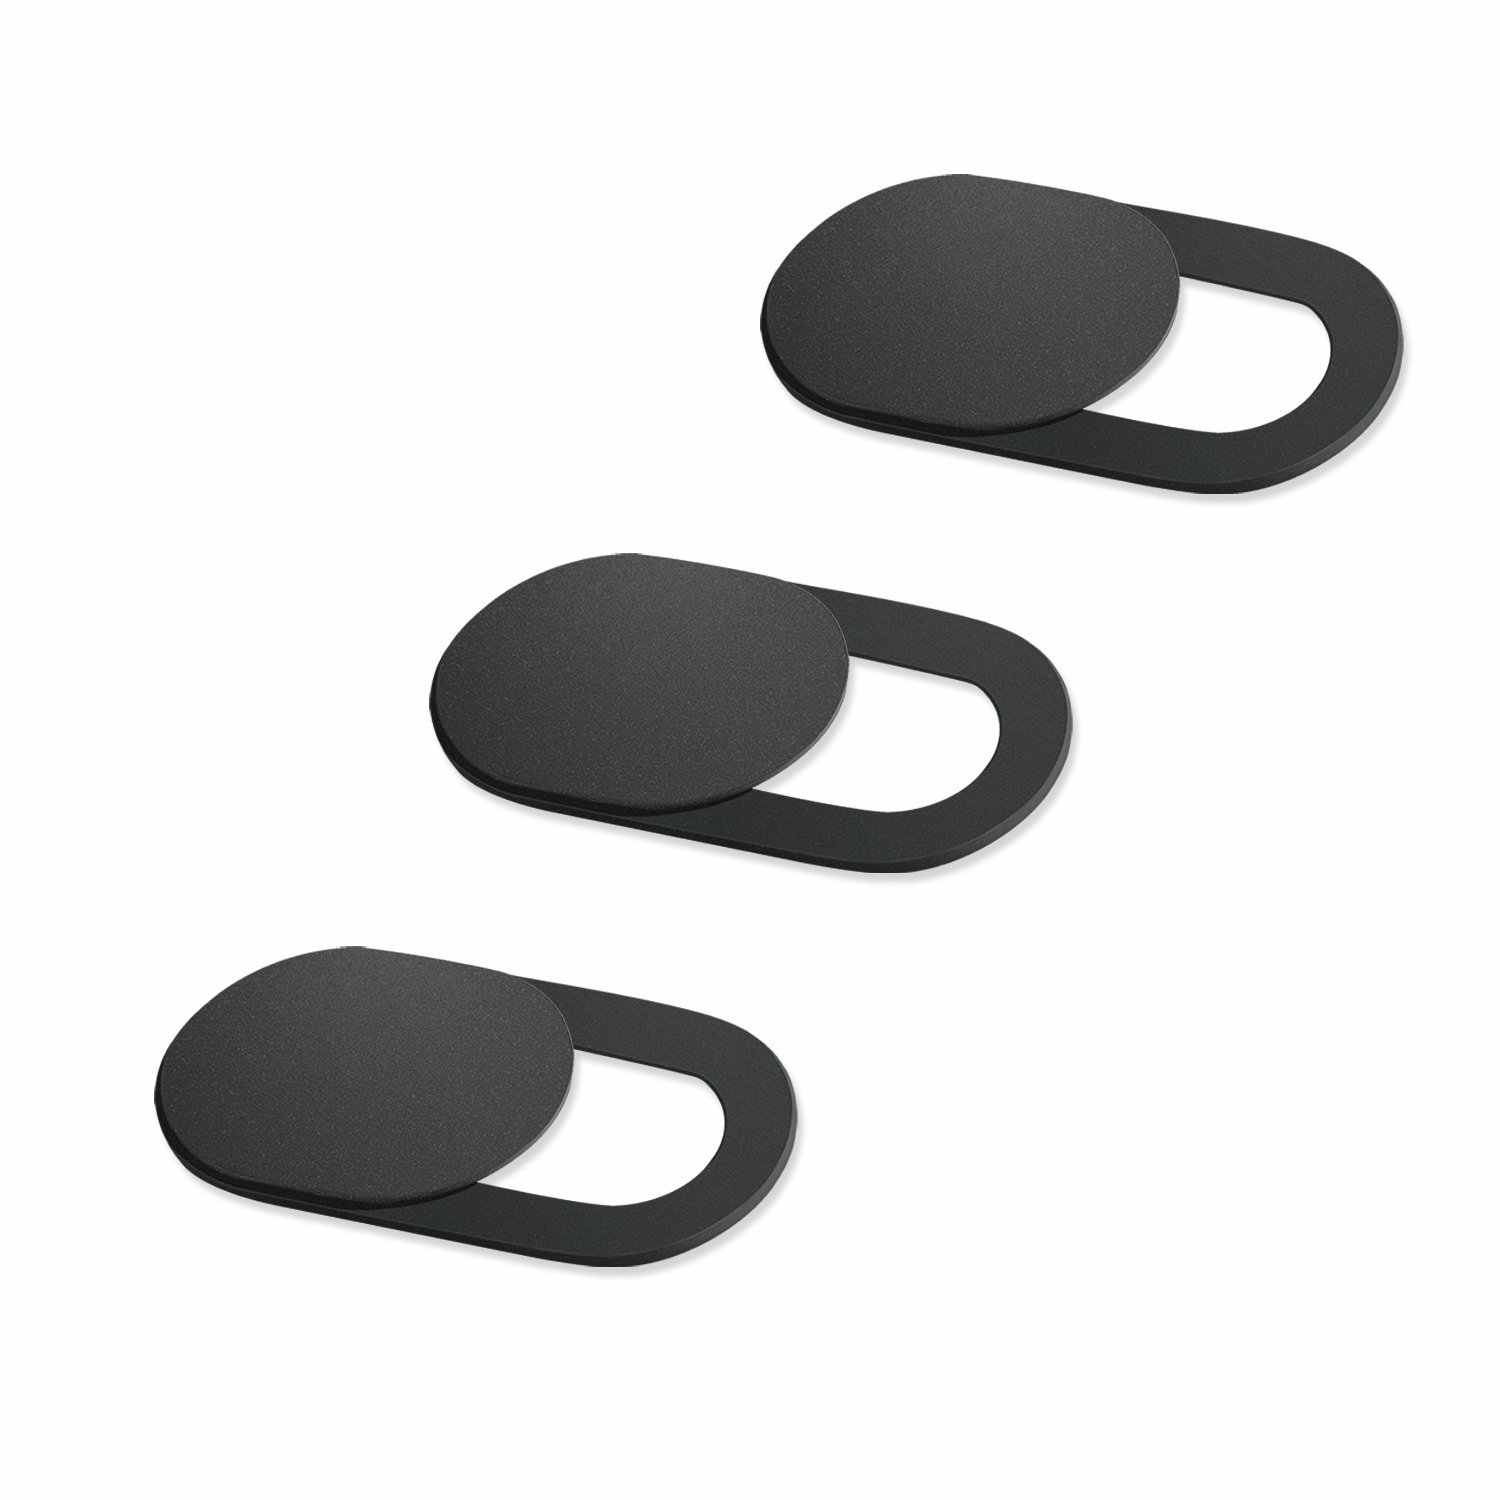 AAAE Top 3 Pack Webcam Cover Ultra-Thin Slide Privacy Protector Camera Cover For Laptop Phone , Protect Your Privacy Security